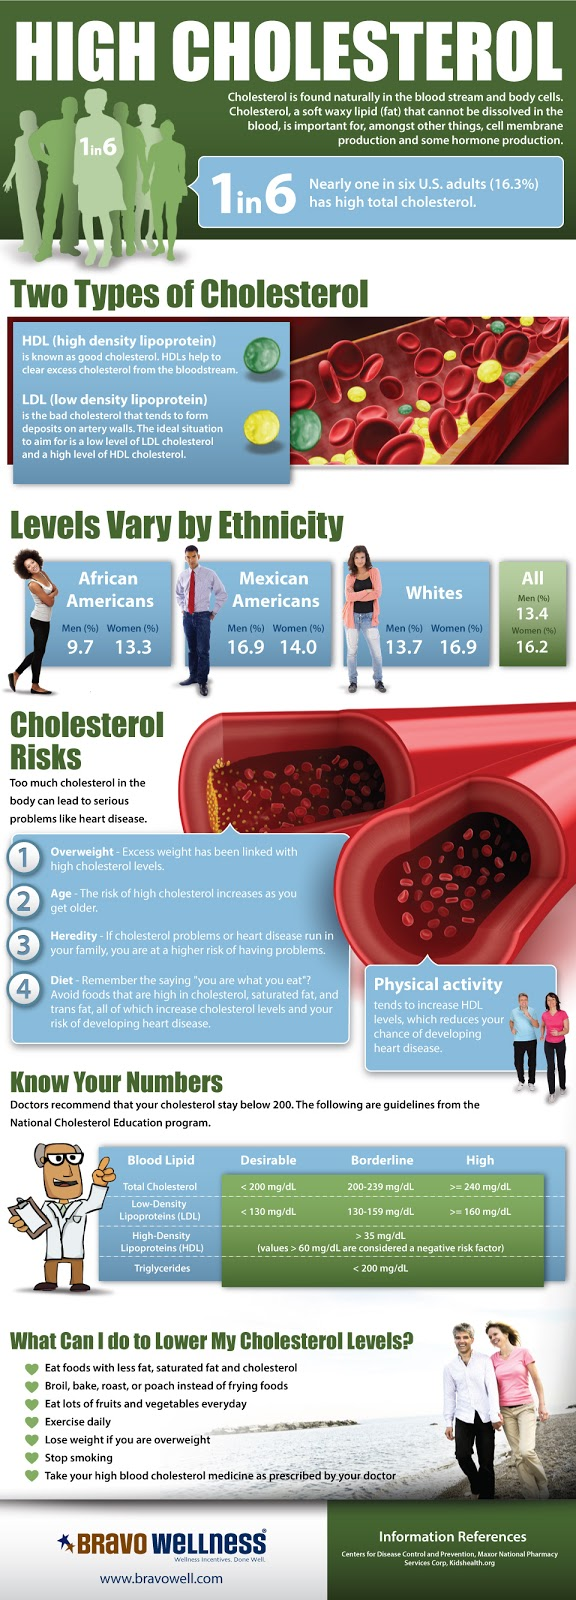 how to take fenugreek for lowering cholesterol